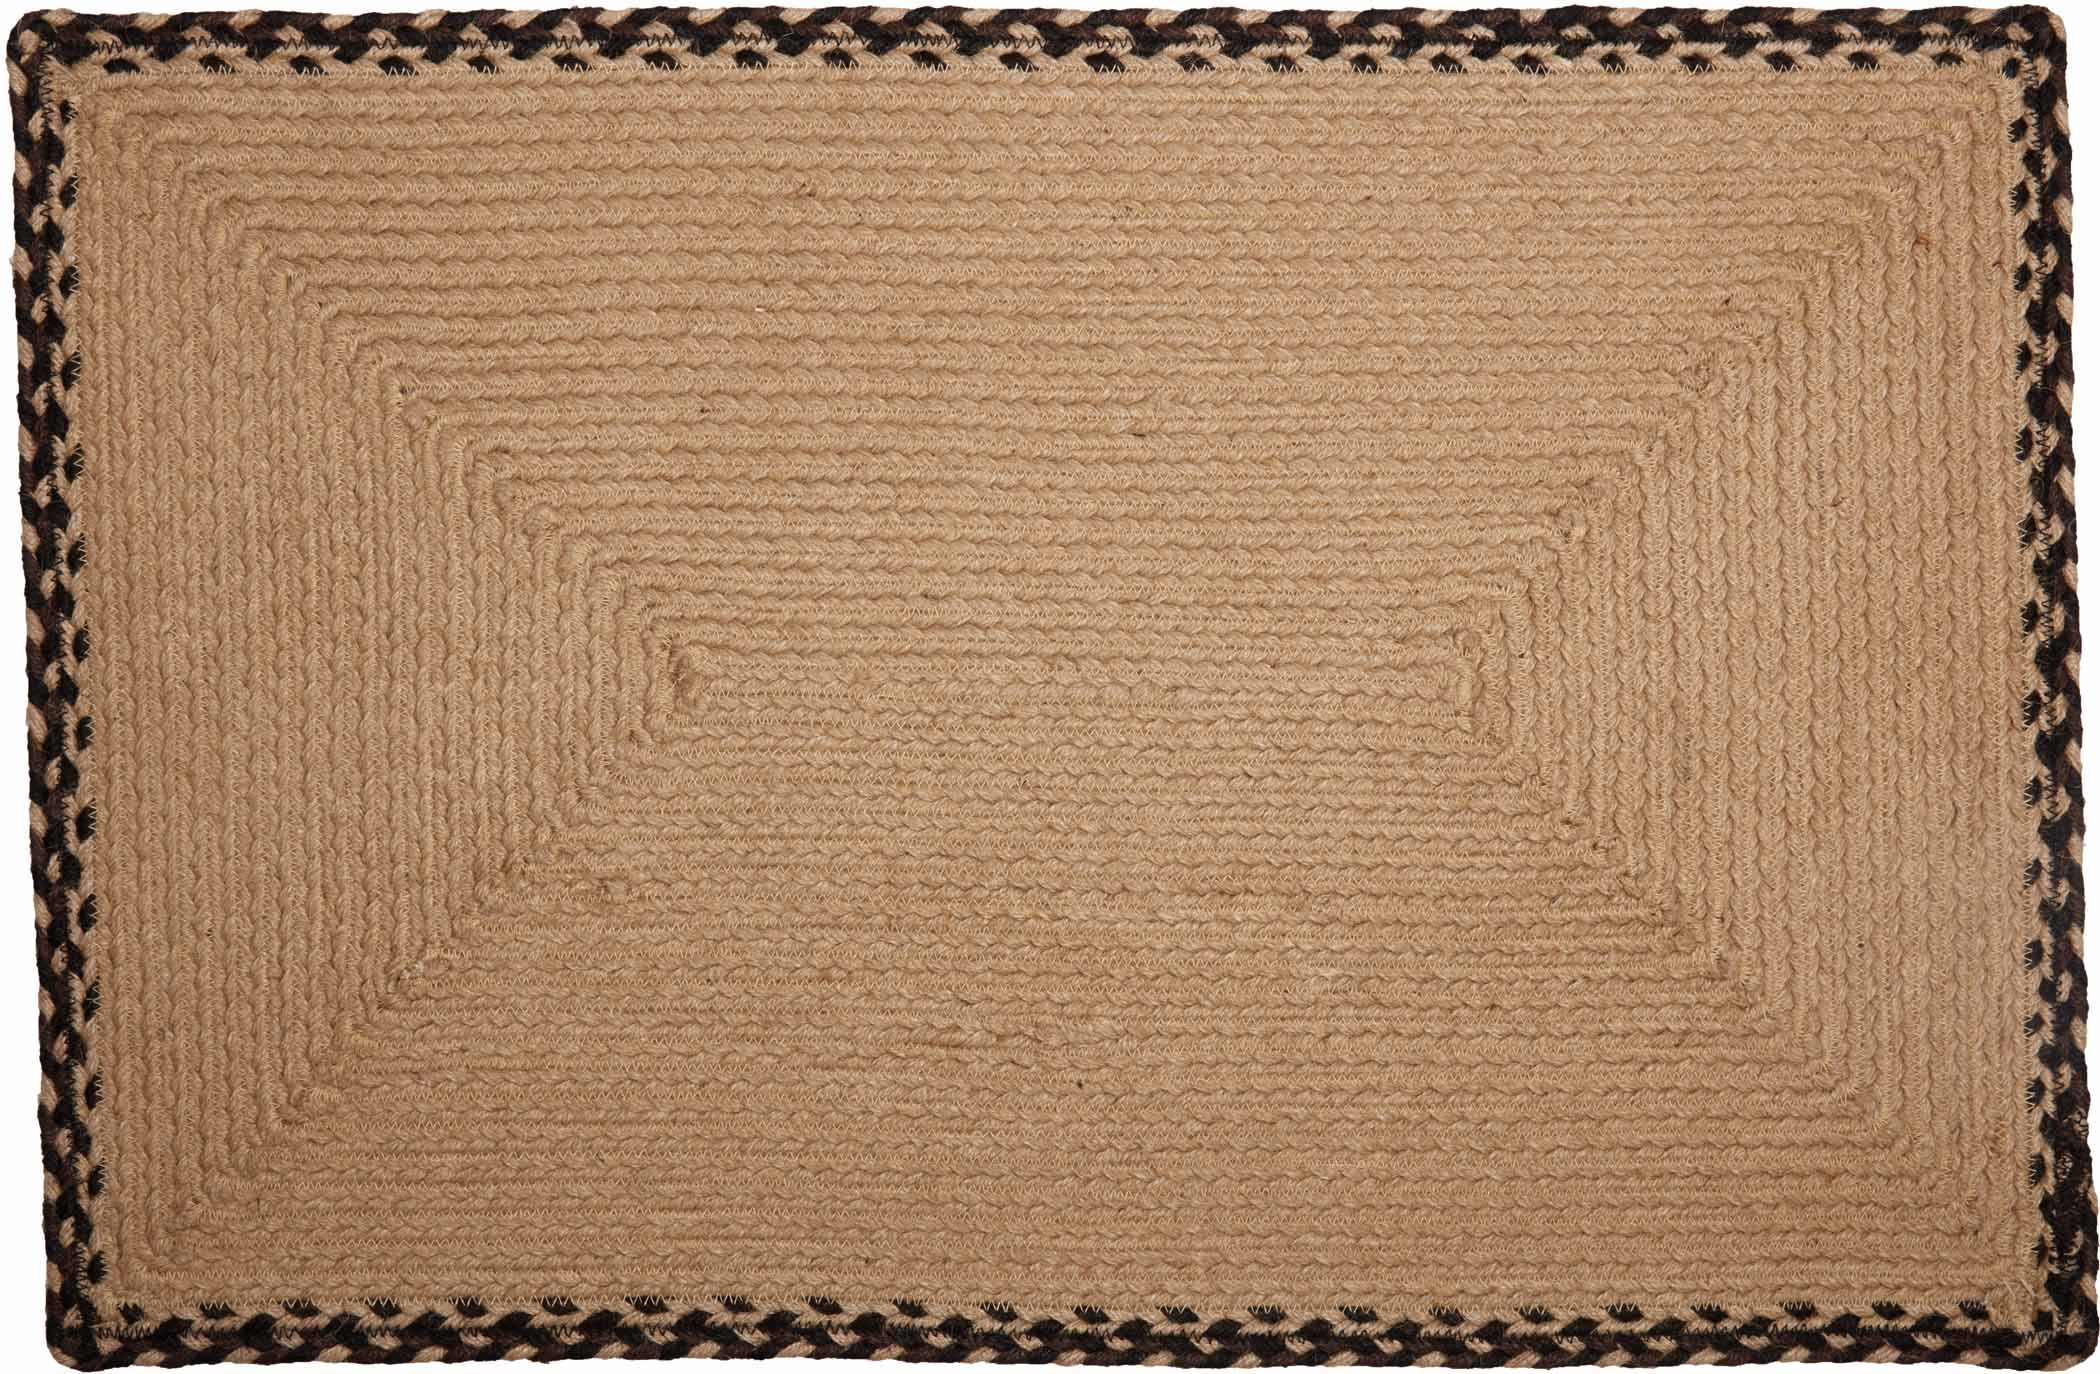 Sawyer-Mill-Charcoal-Plow-Jute-Rug-Rect-20x30-image-4